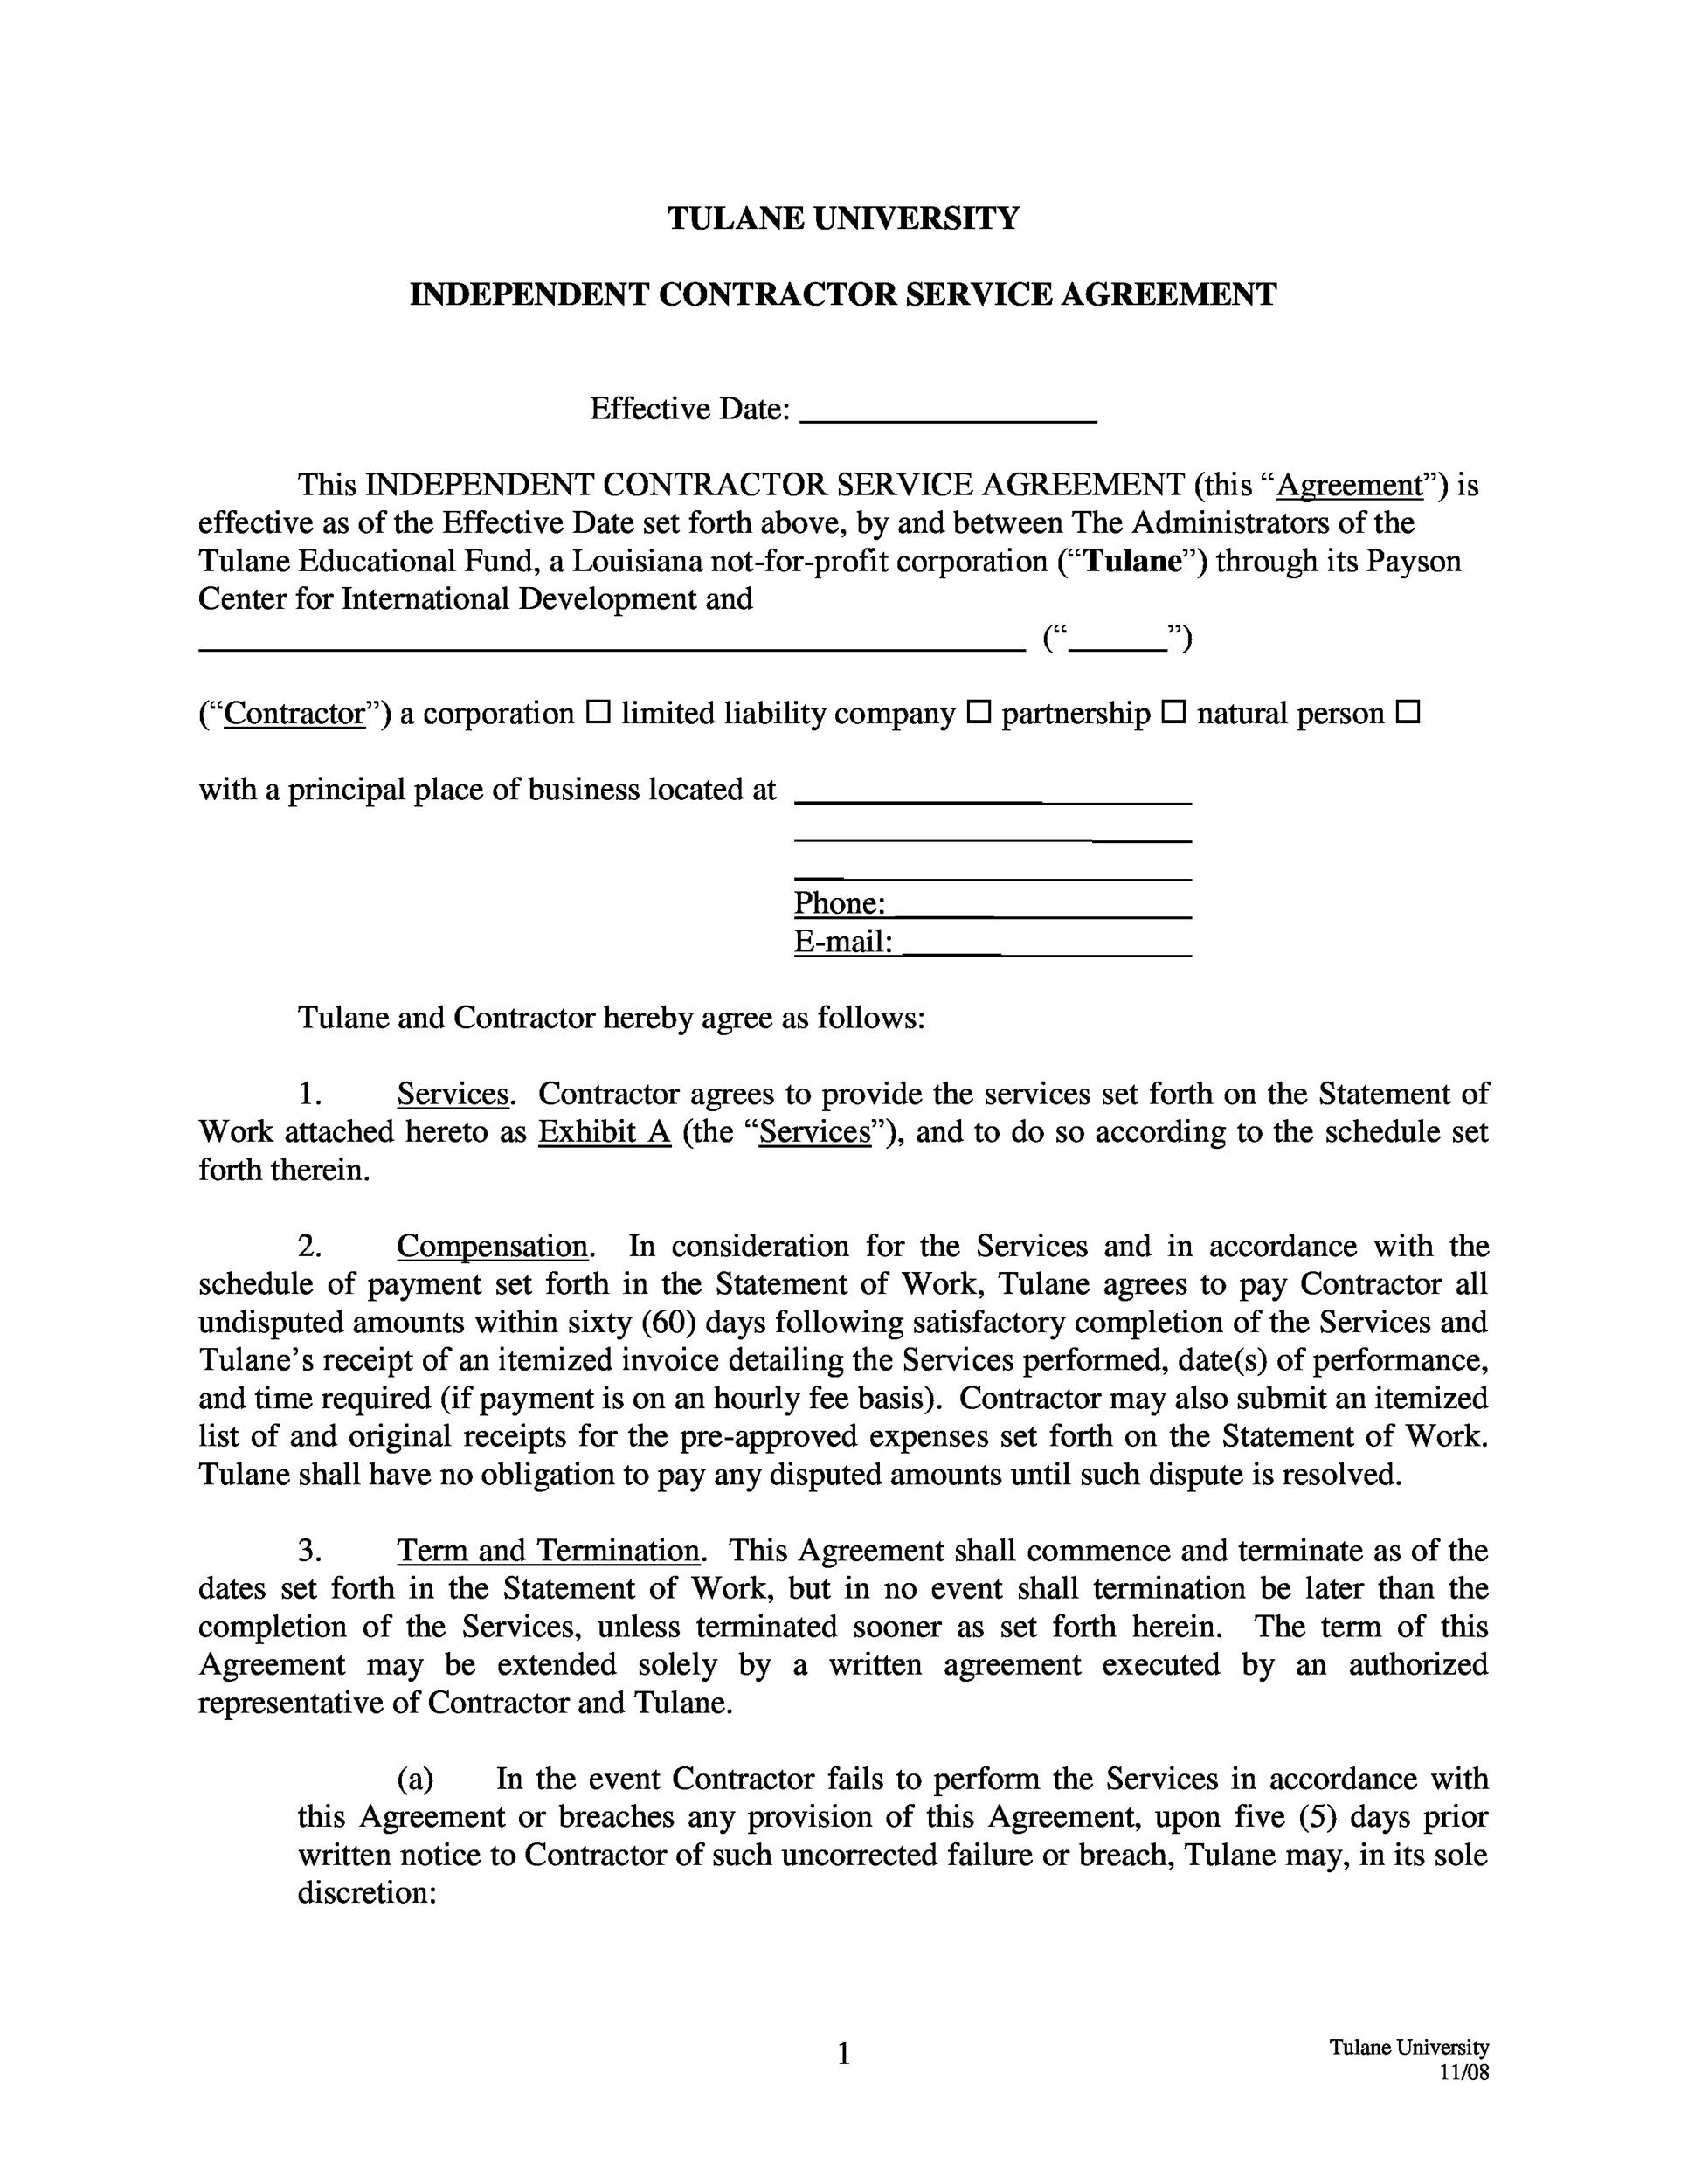 Free independent contractor agreement 15